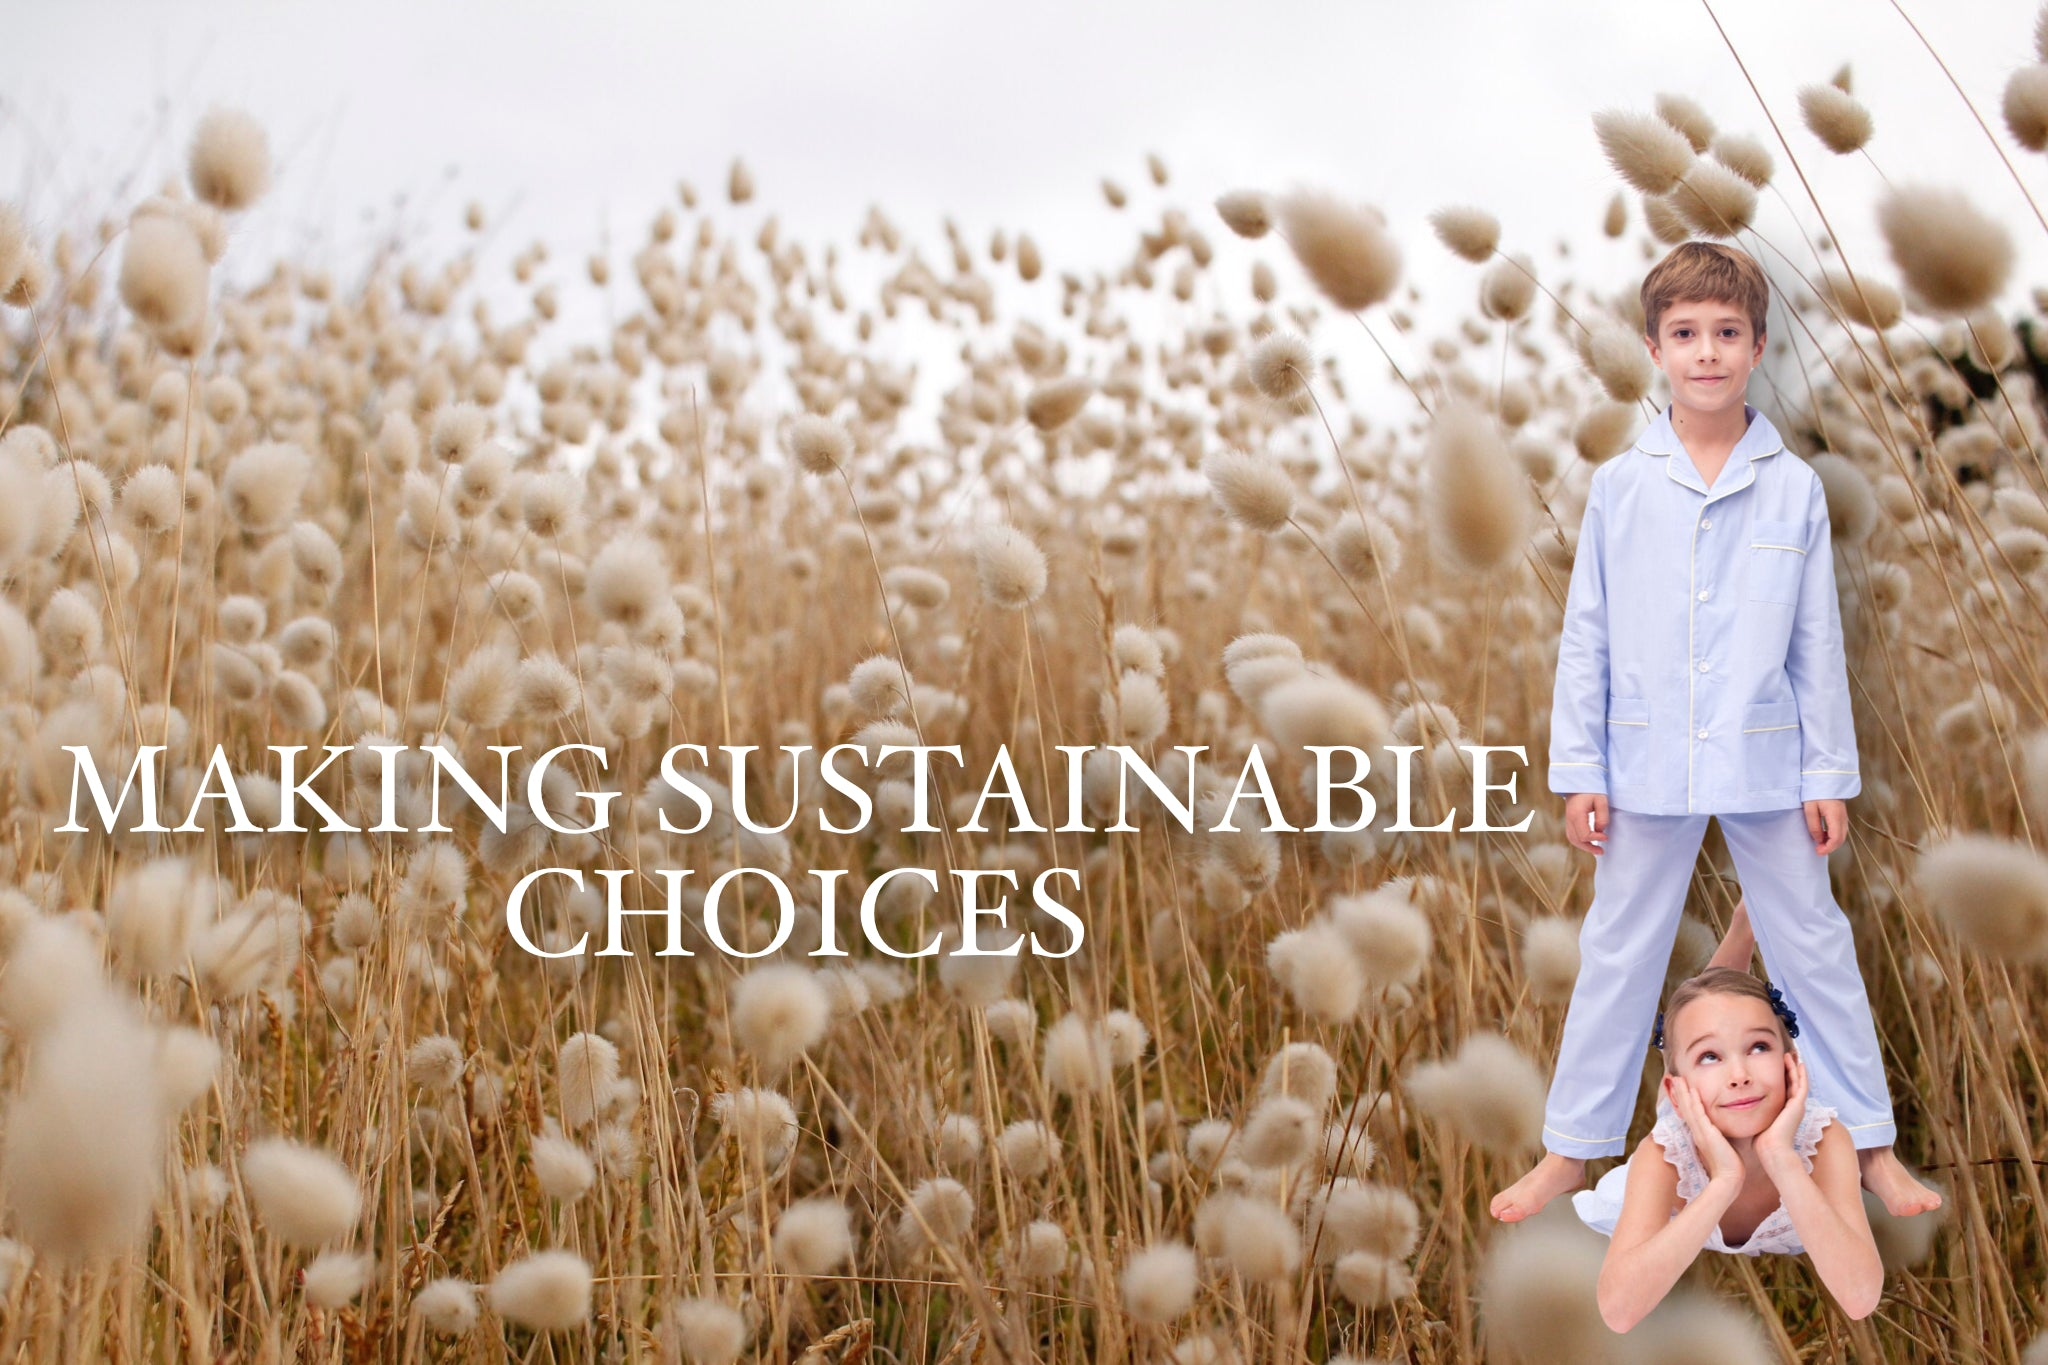 Making Sustainable Choices